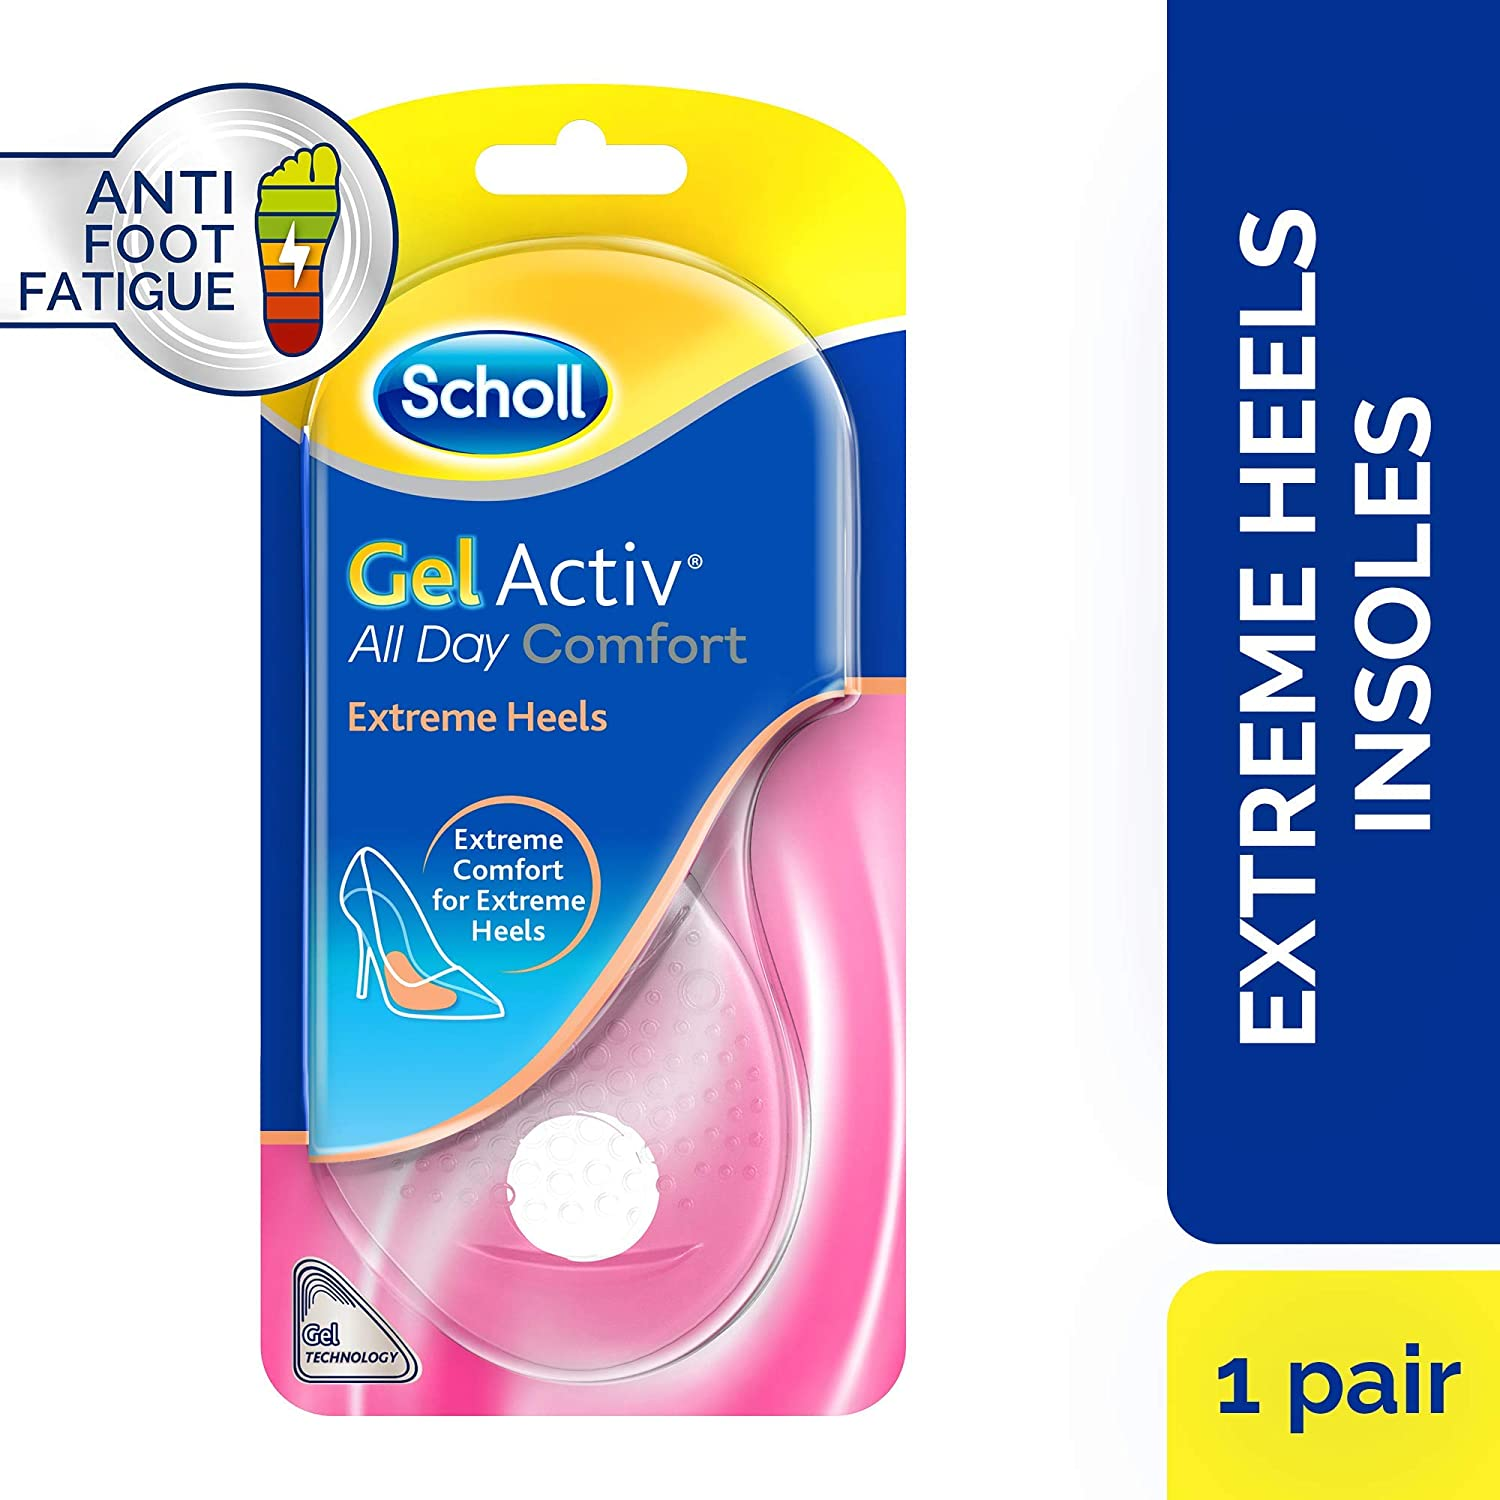 f8676a322b Scholl Gel Activ Extreme Heels Insoles, 1 Pair: Amazon.co.uk: Prime Pantry